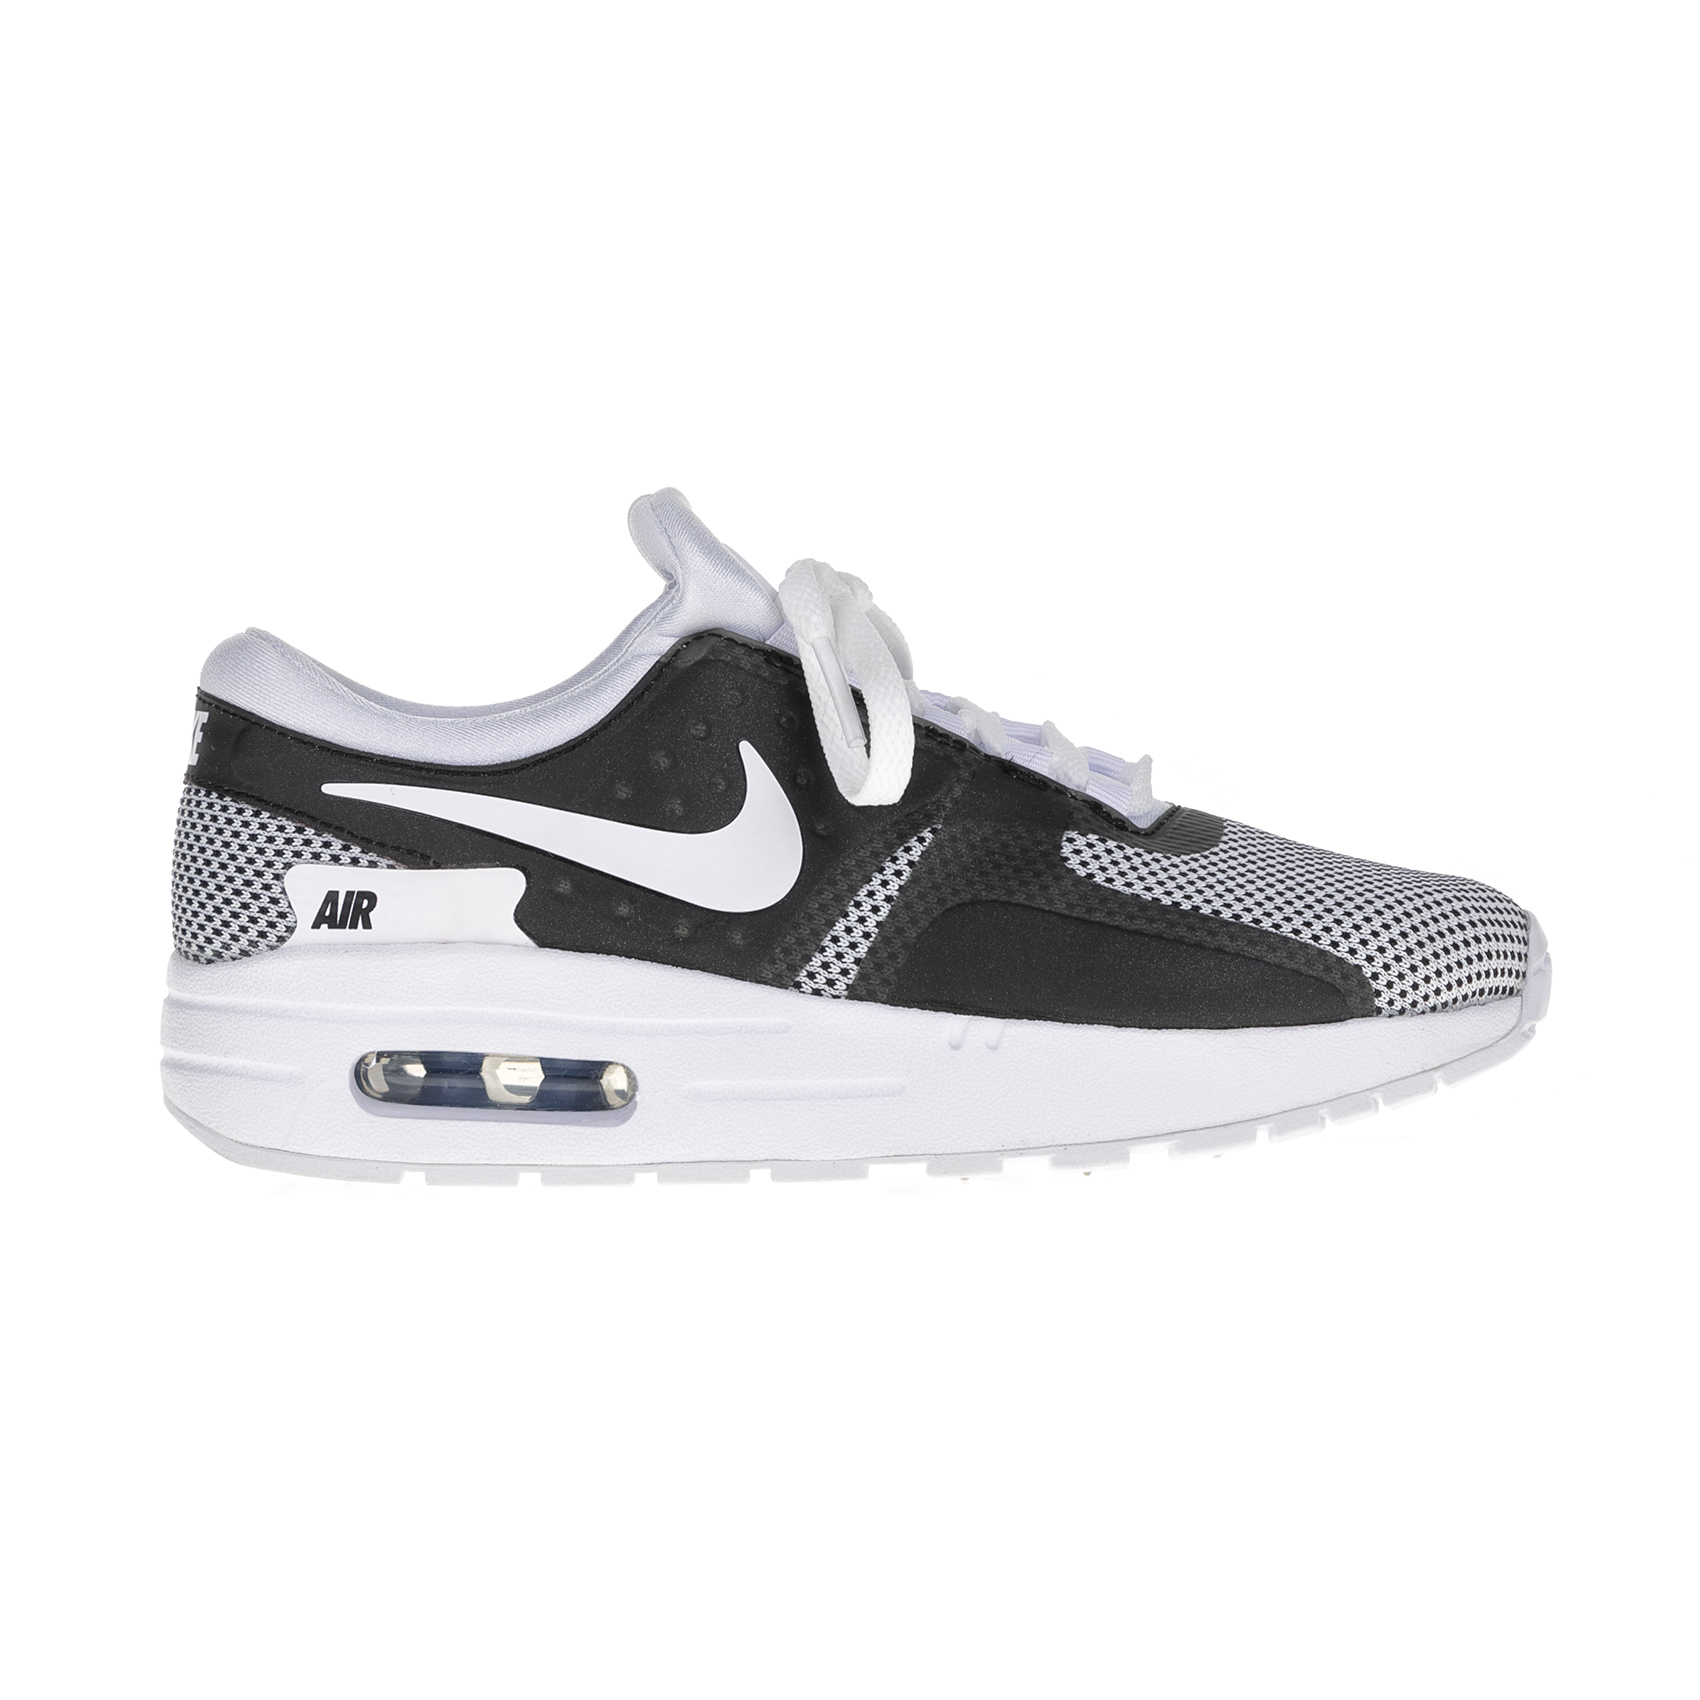 NIKE - Παιδικά αθλητικά παπούτσια Nike AIR MAX ZERO ESSENTIAL PS άσπρα - μαύρα